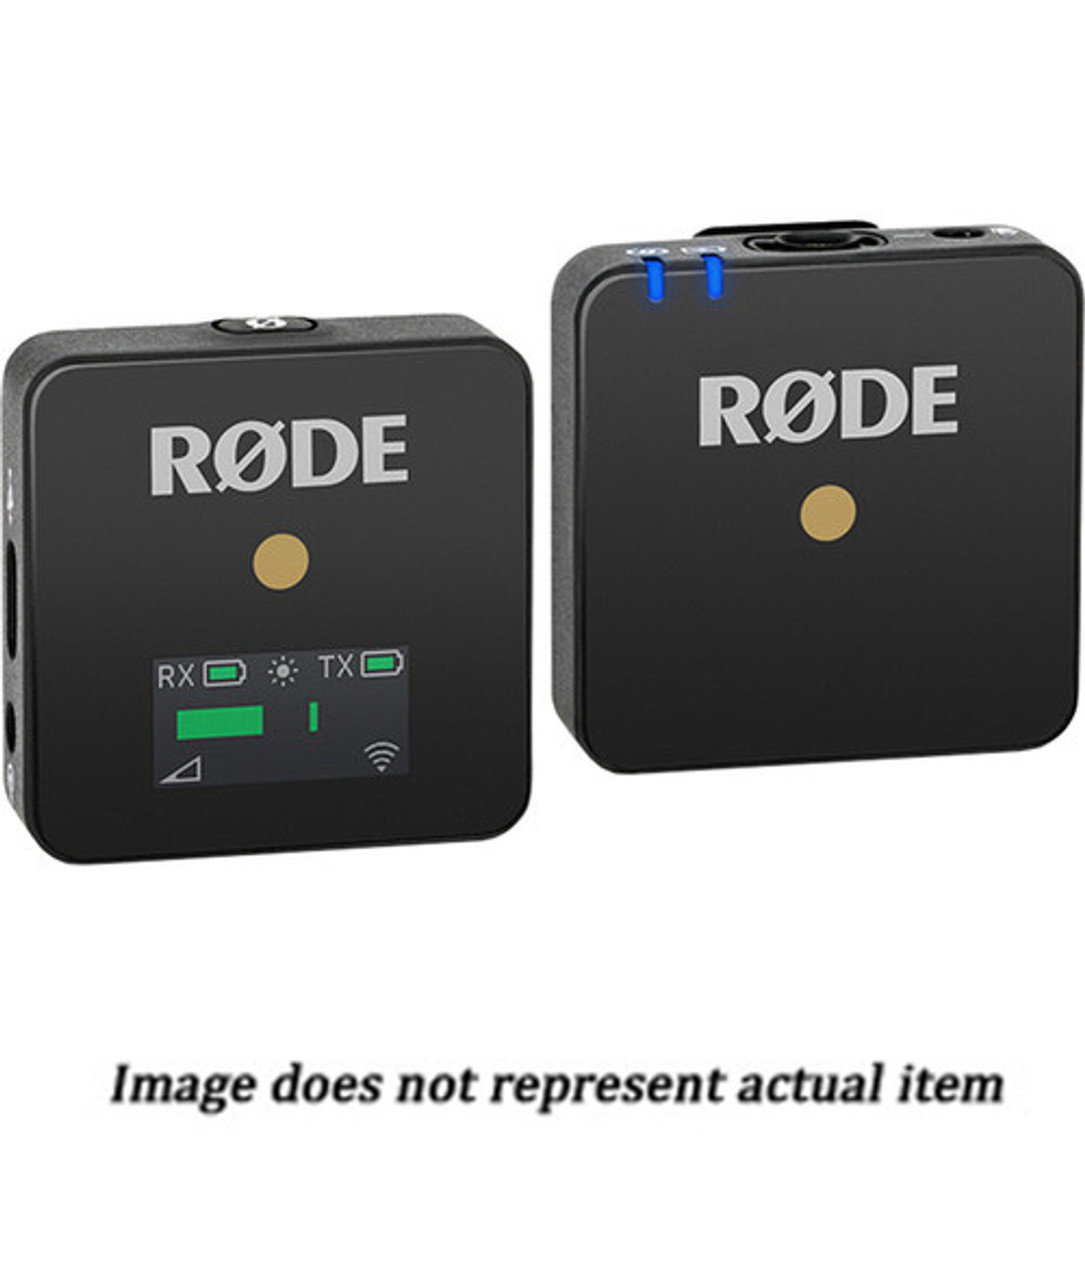 RODE Wireless GO Compact Digital Wireless Microphone System (USED)